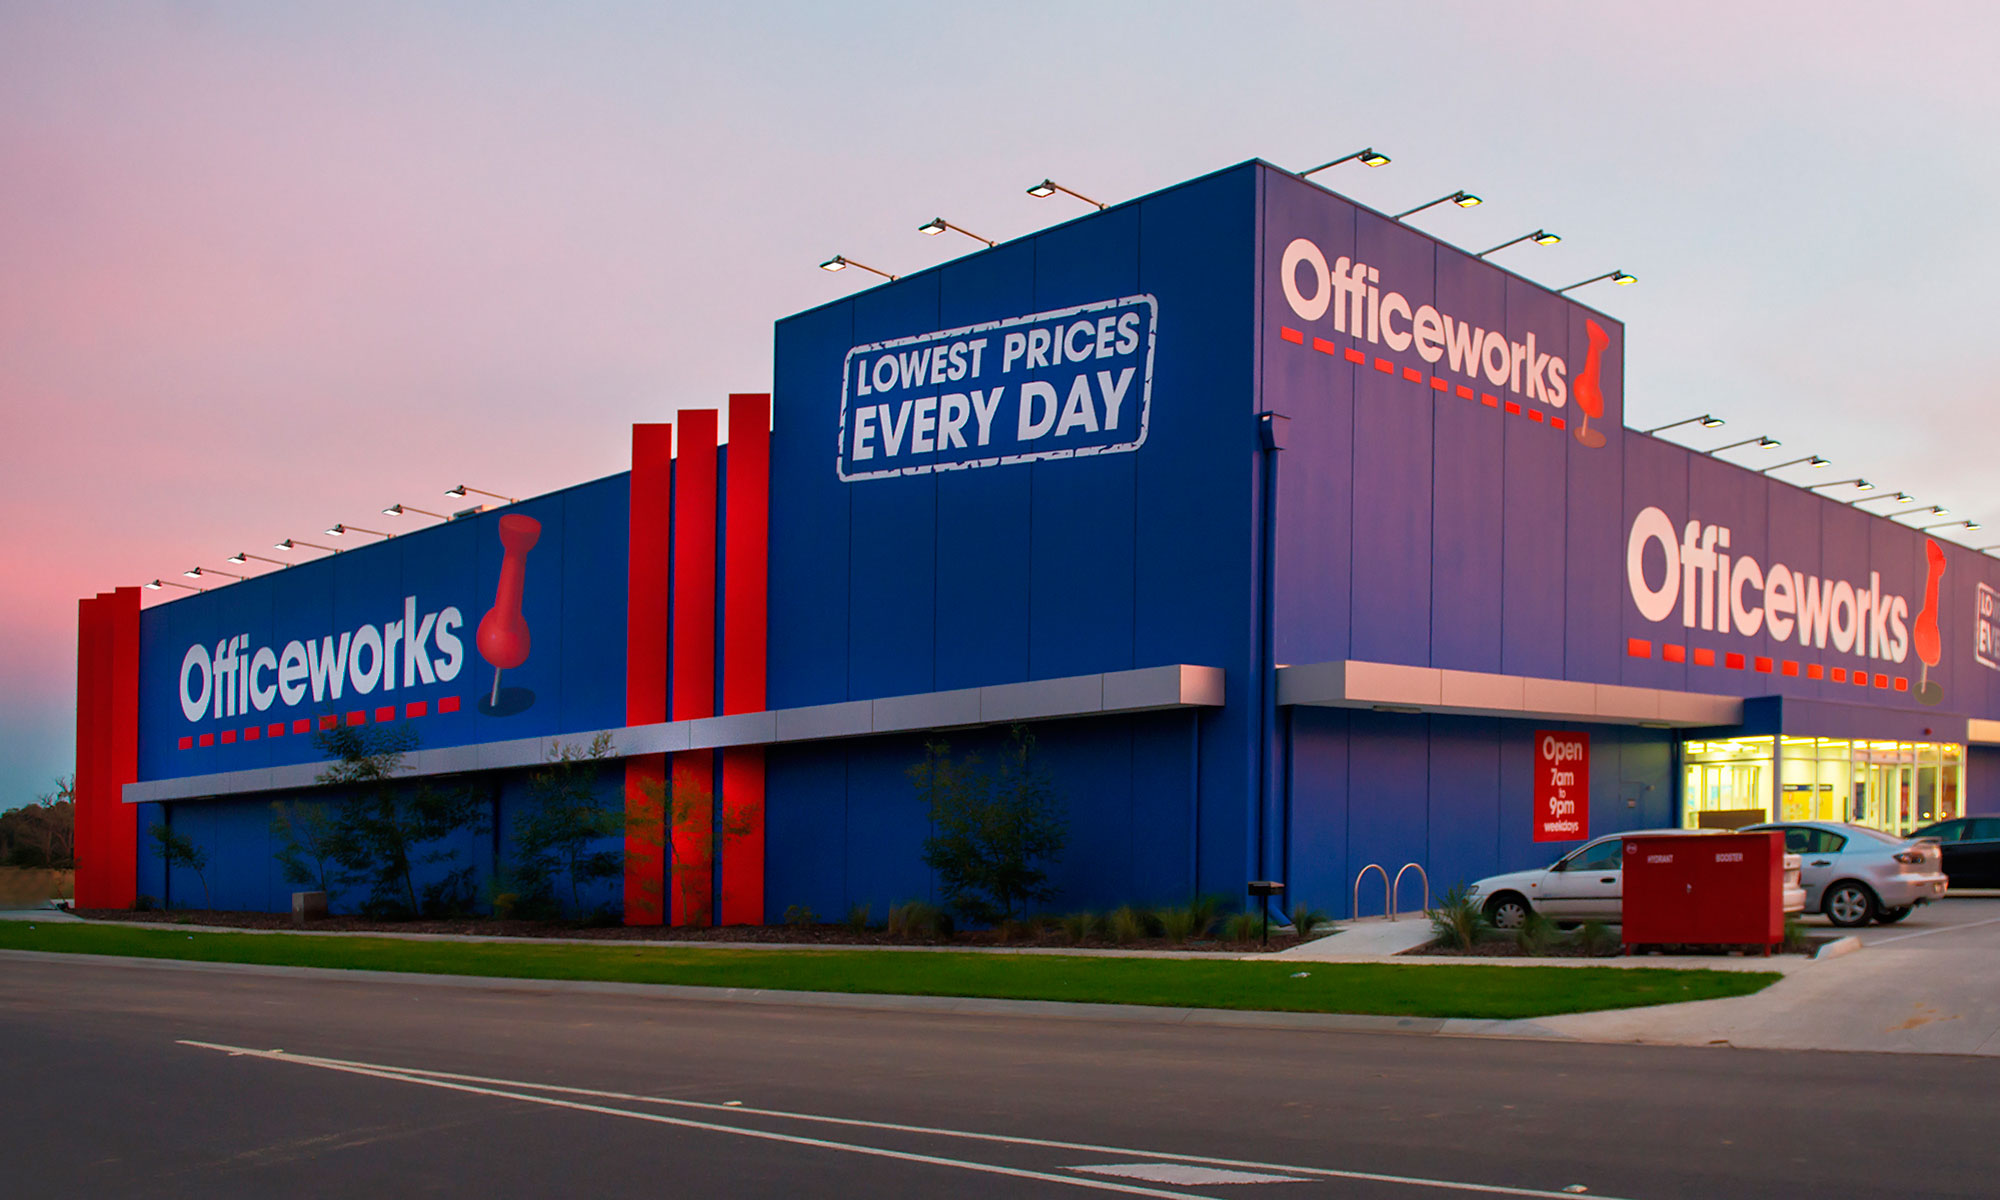 Officeworks - Officeworks uses analytical insights to reimagine their customer life stage marketing campaigns